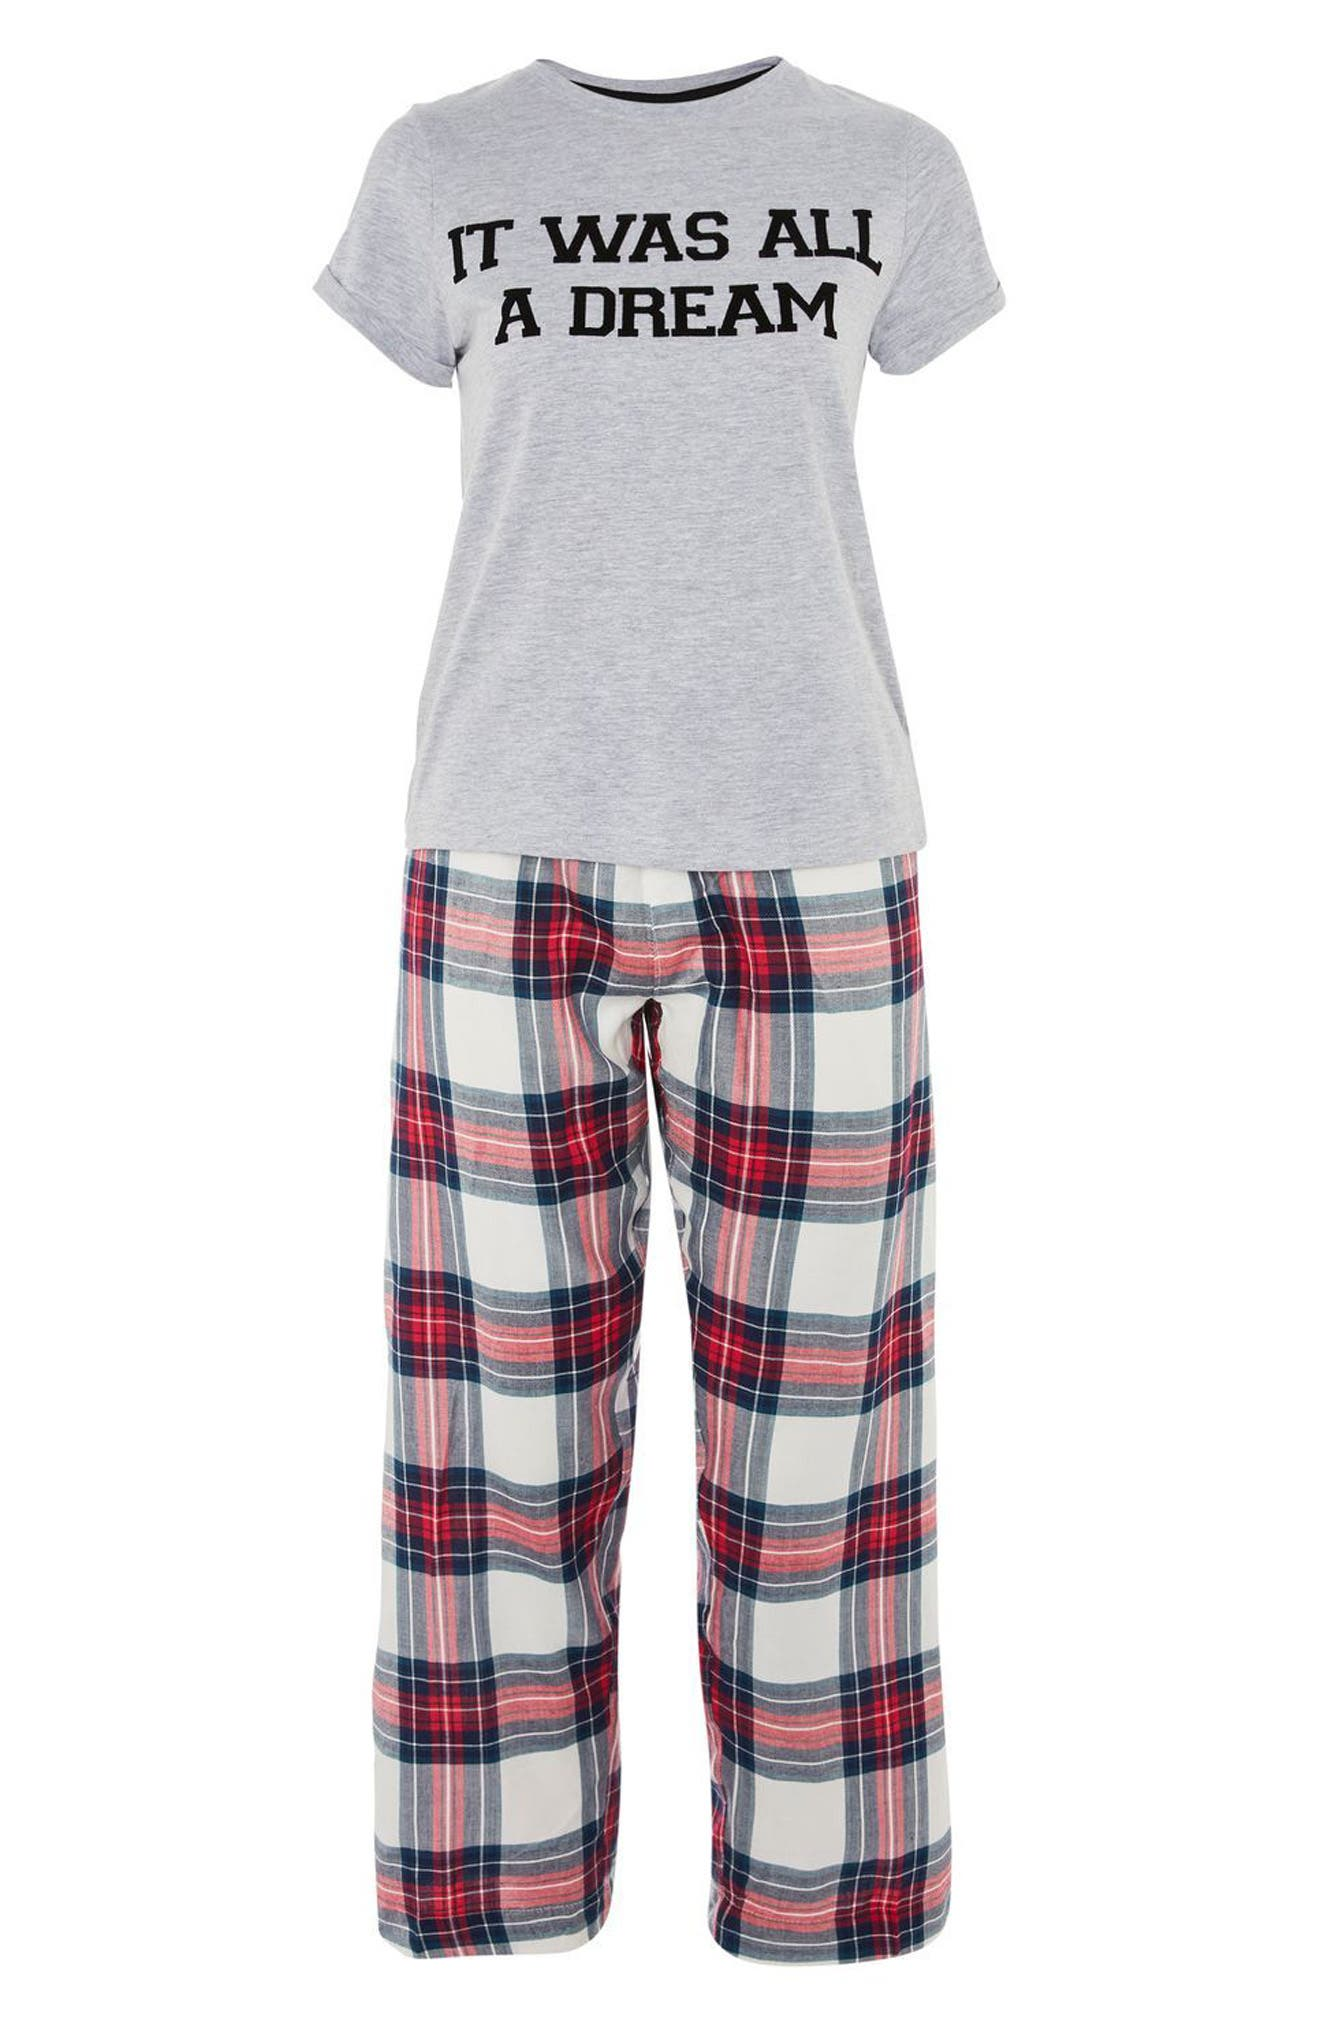 It Was All a Dream Pajamas,                             Alternate thumbnail 3, color,                             Red Multi